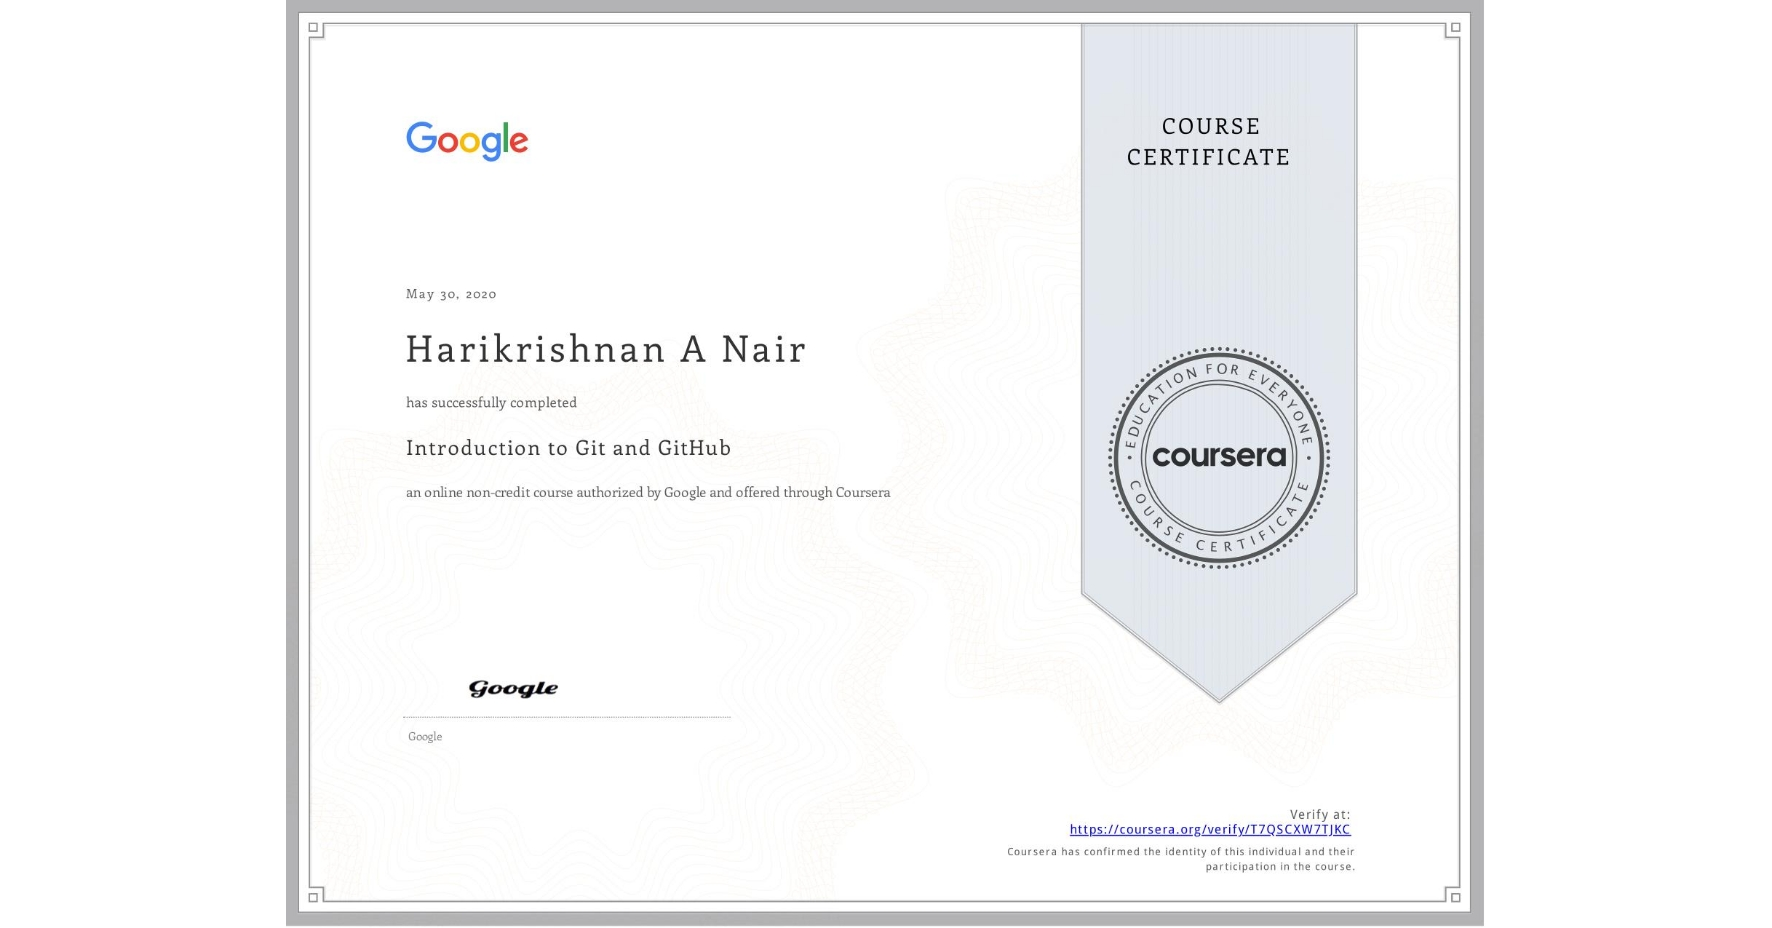 View certificate for Harikrishnan A Nair, Introduction to Git and GitHub, an online non-credit course authorized by Google and offered through Coursera